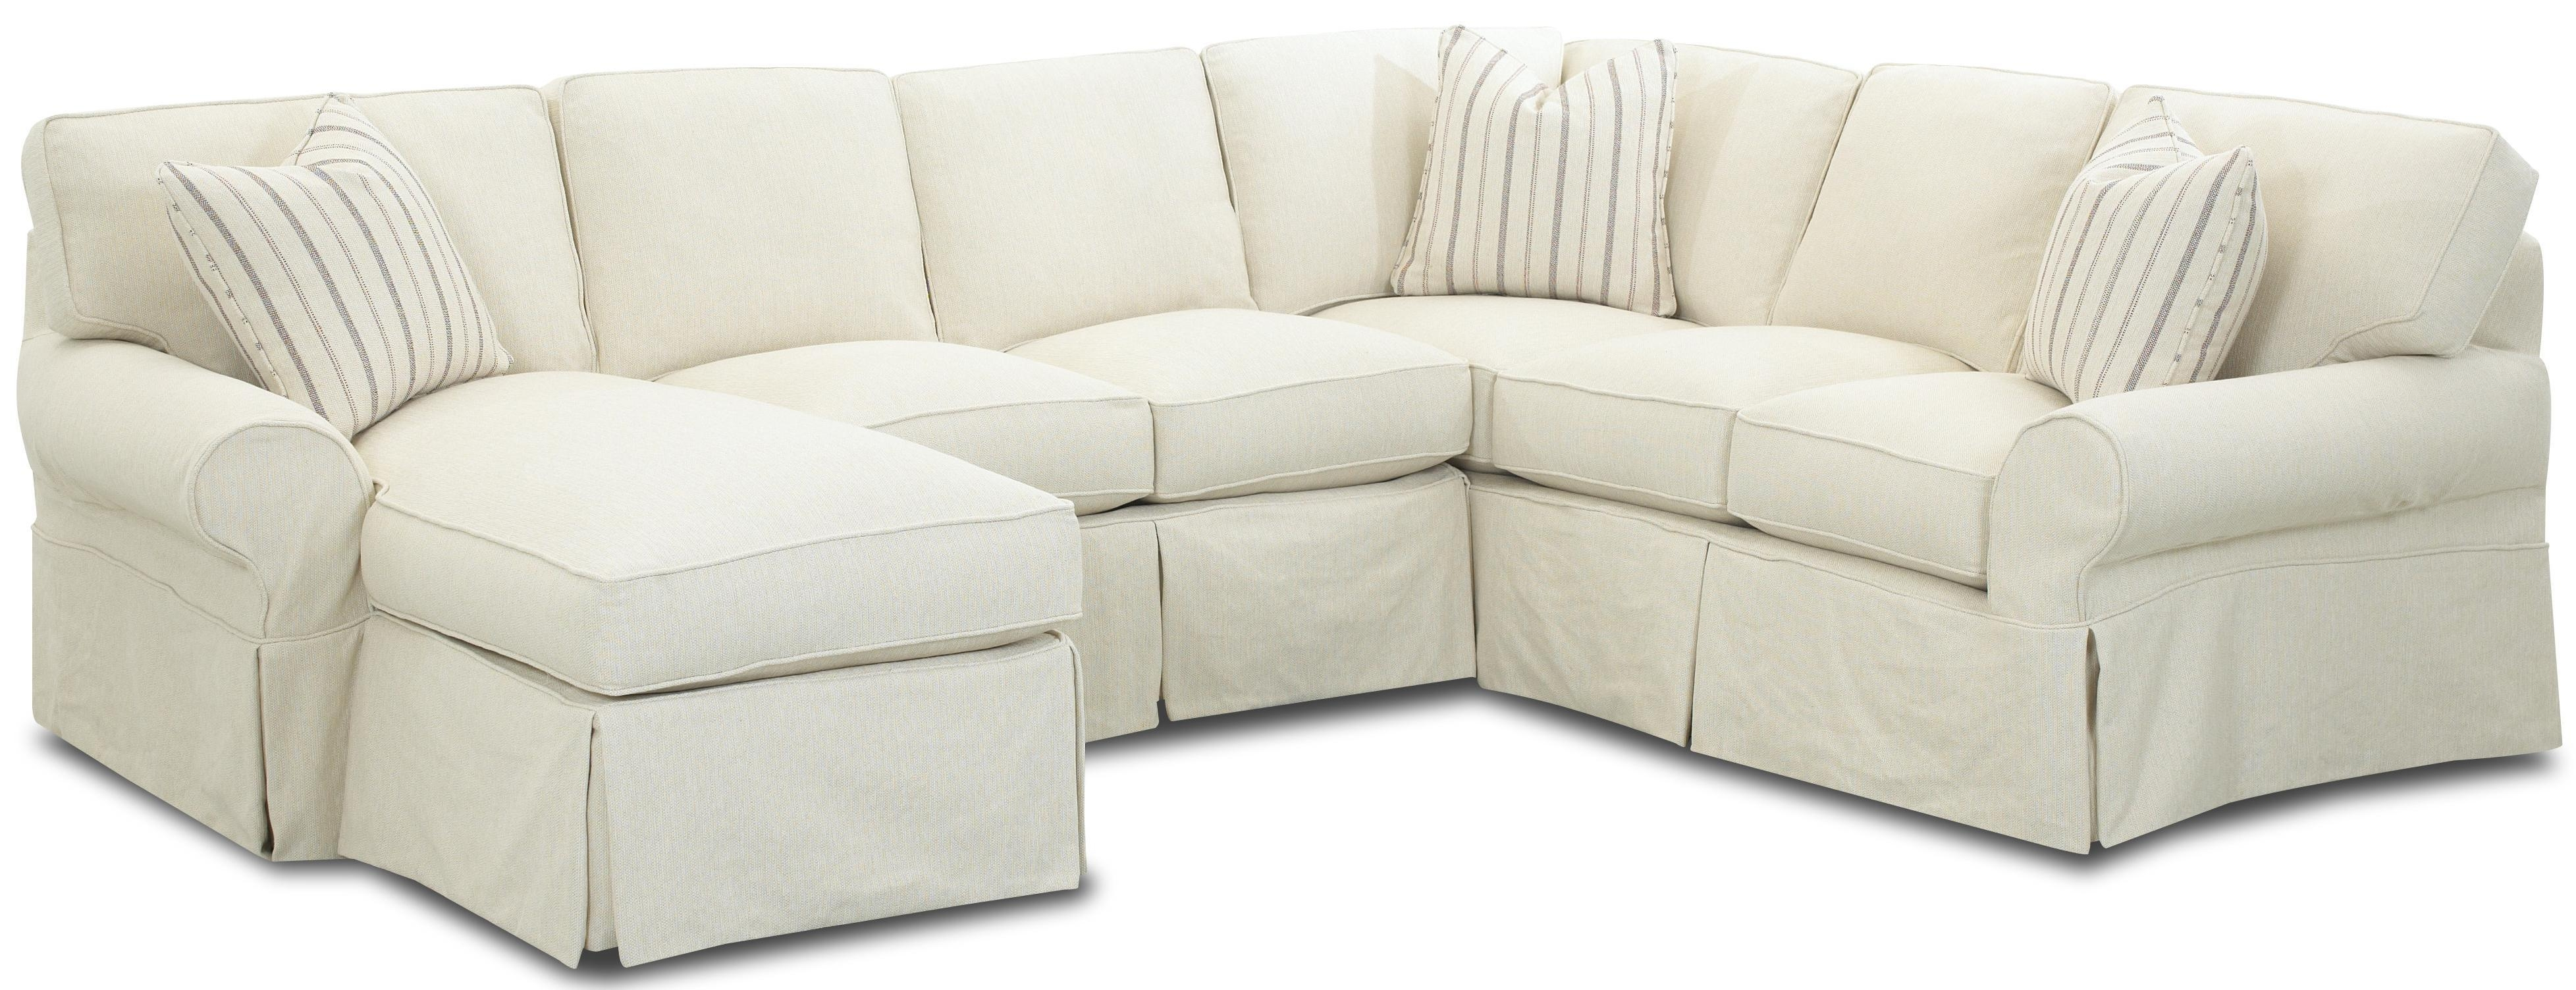 Slipcovered Sectional Sofa With Left Chaiseklaussner | Wolf With Regard To Slipcovered Chaises (Image 17 of 20)